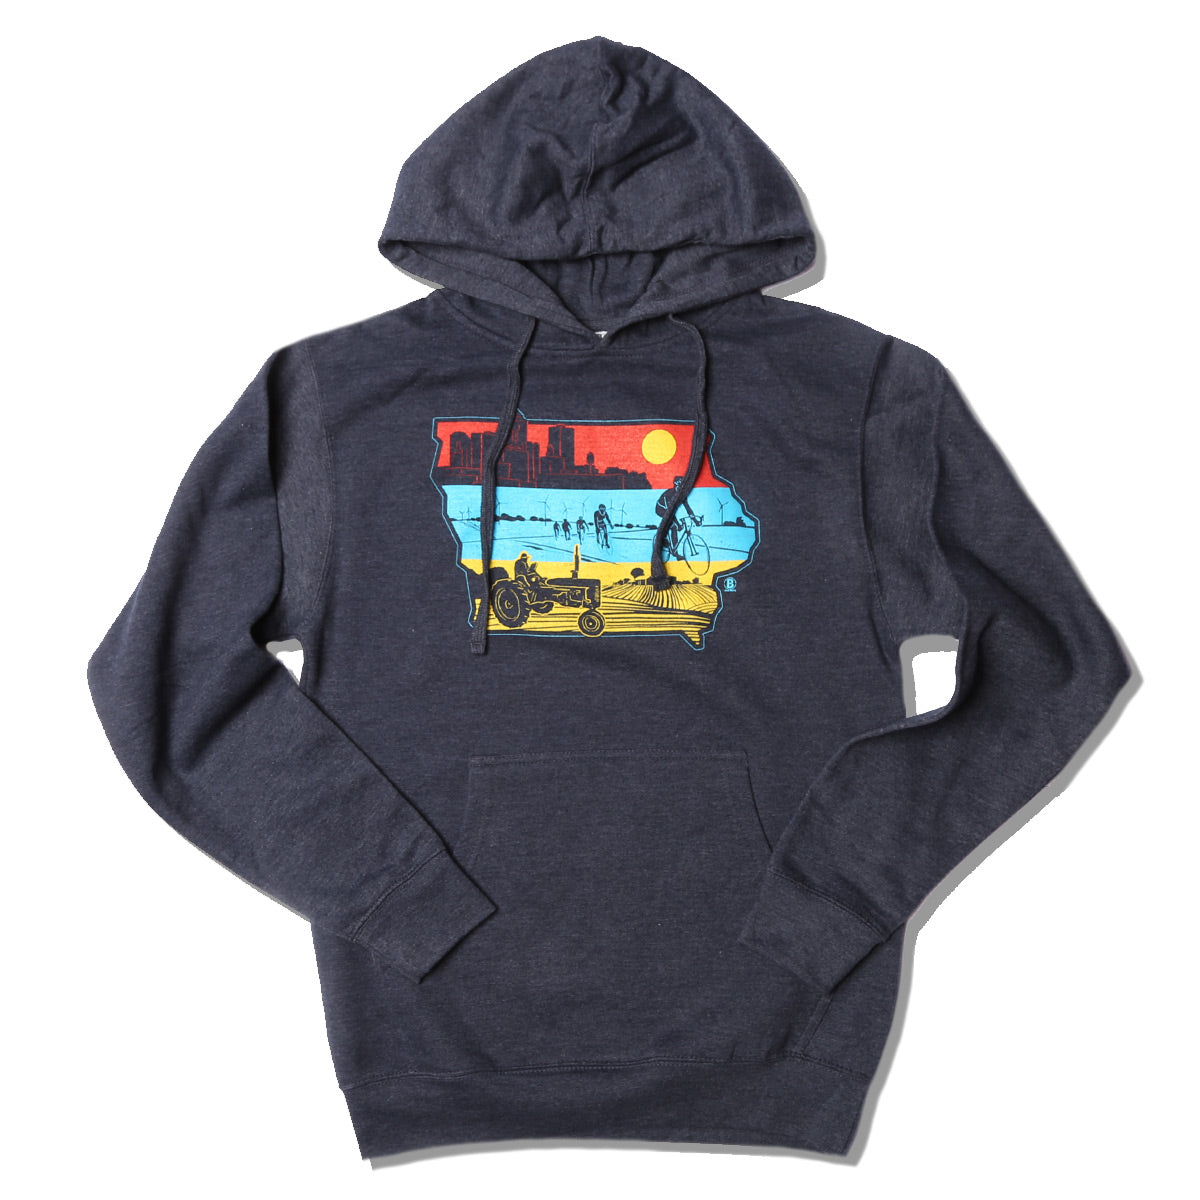 Layers of Iowa Hooded Sweatshirt